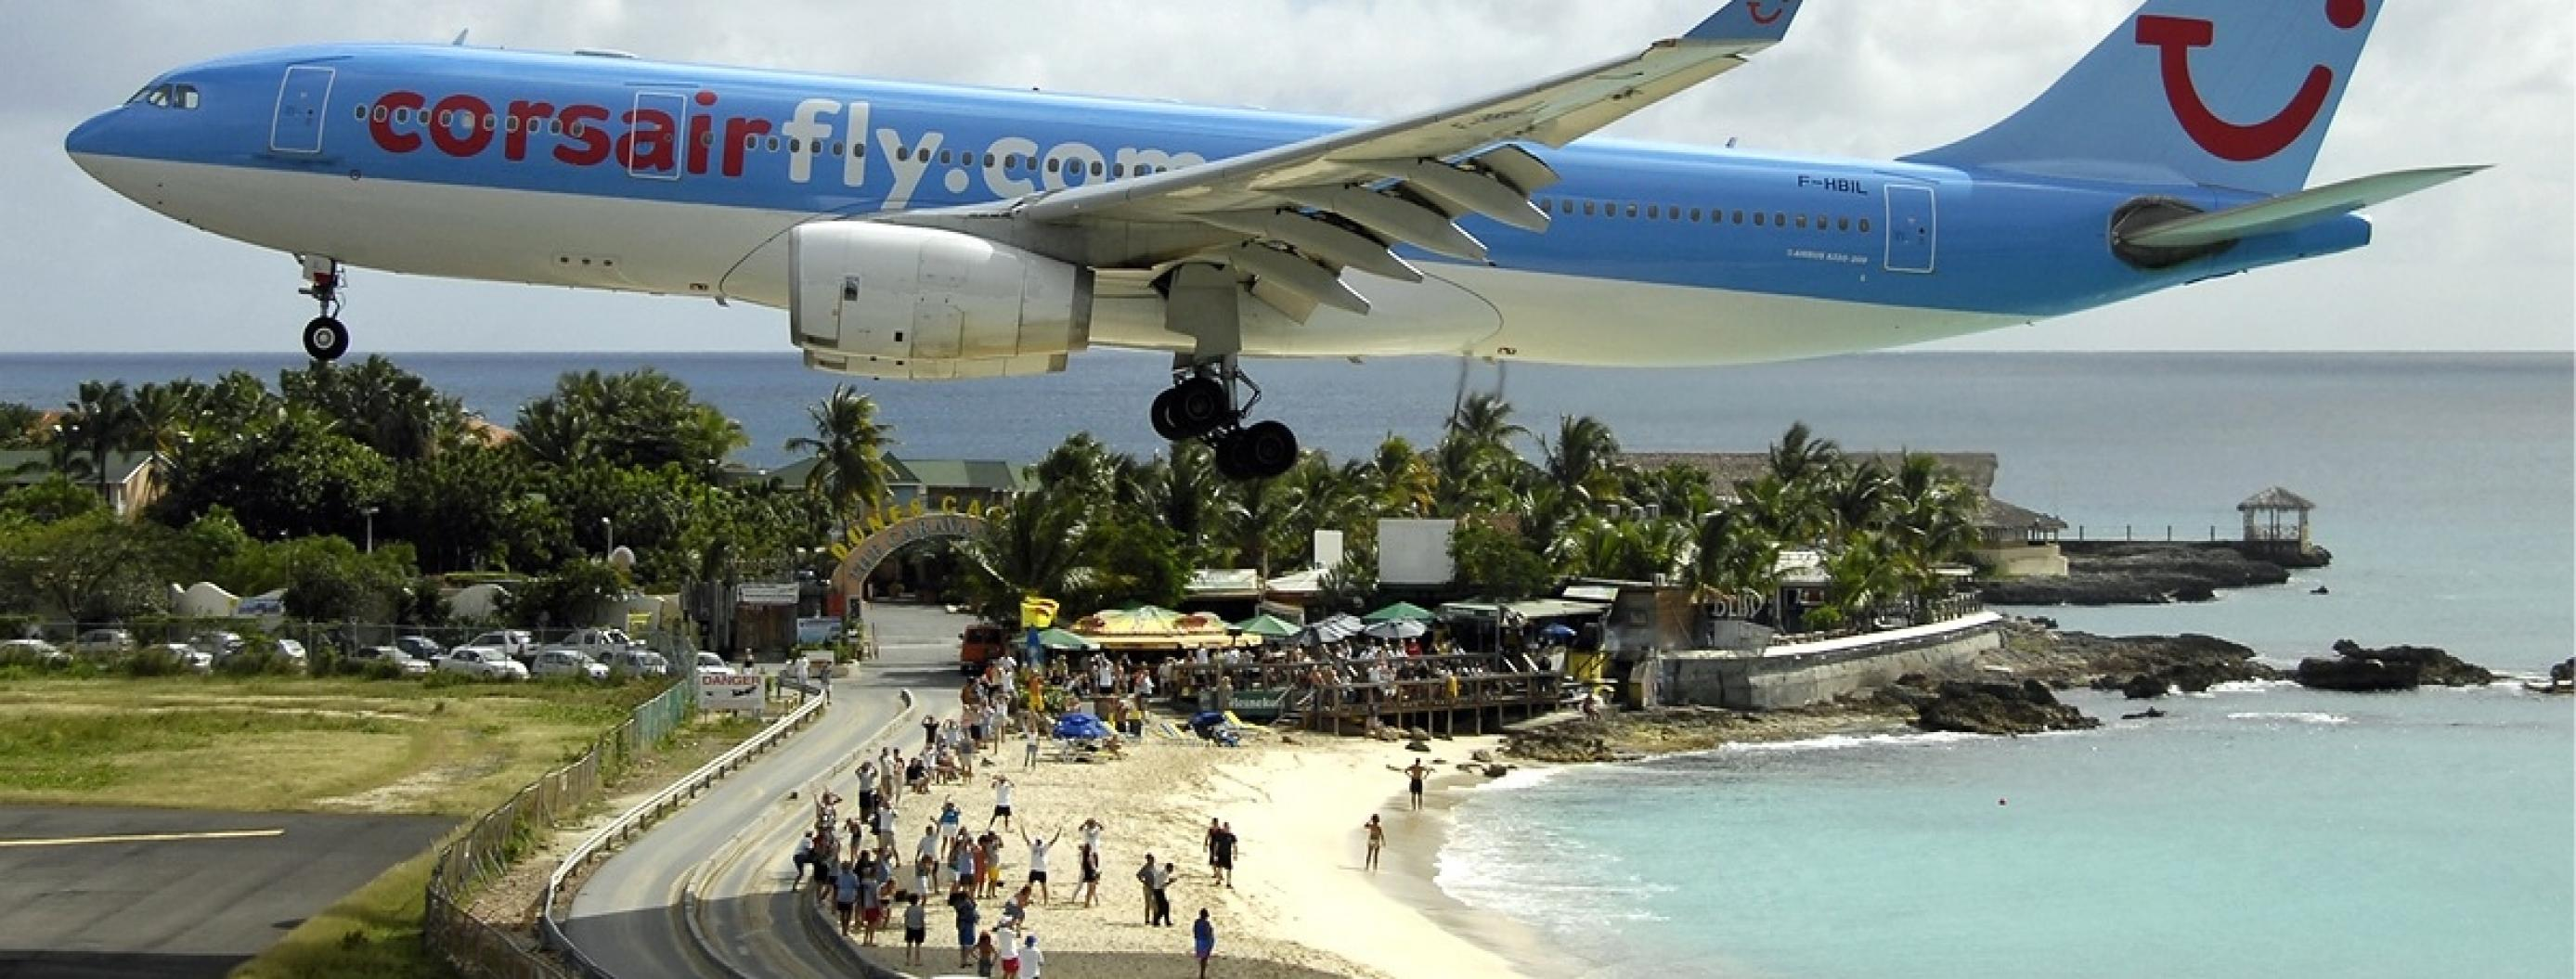 The Most Exotic Airport Landing Strips of the World